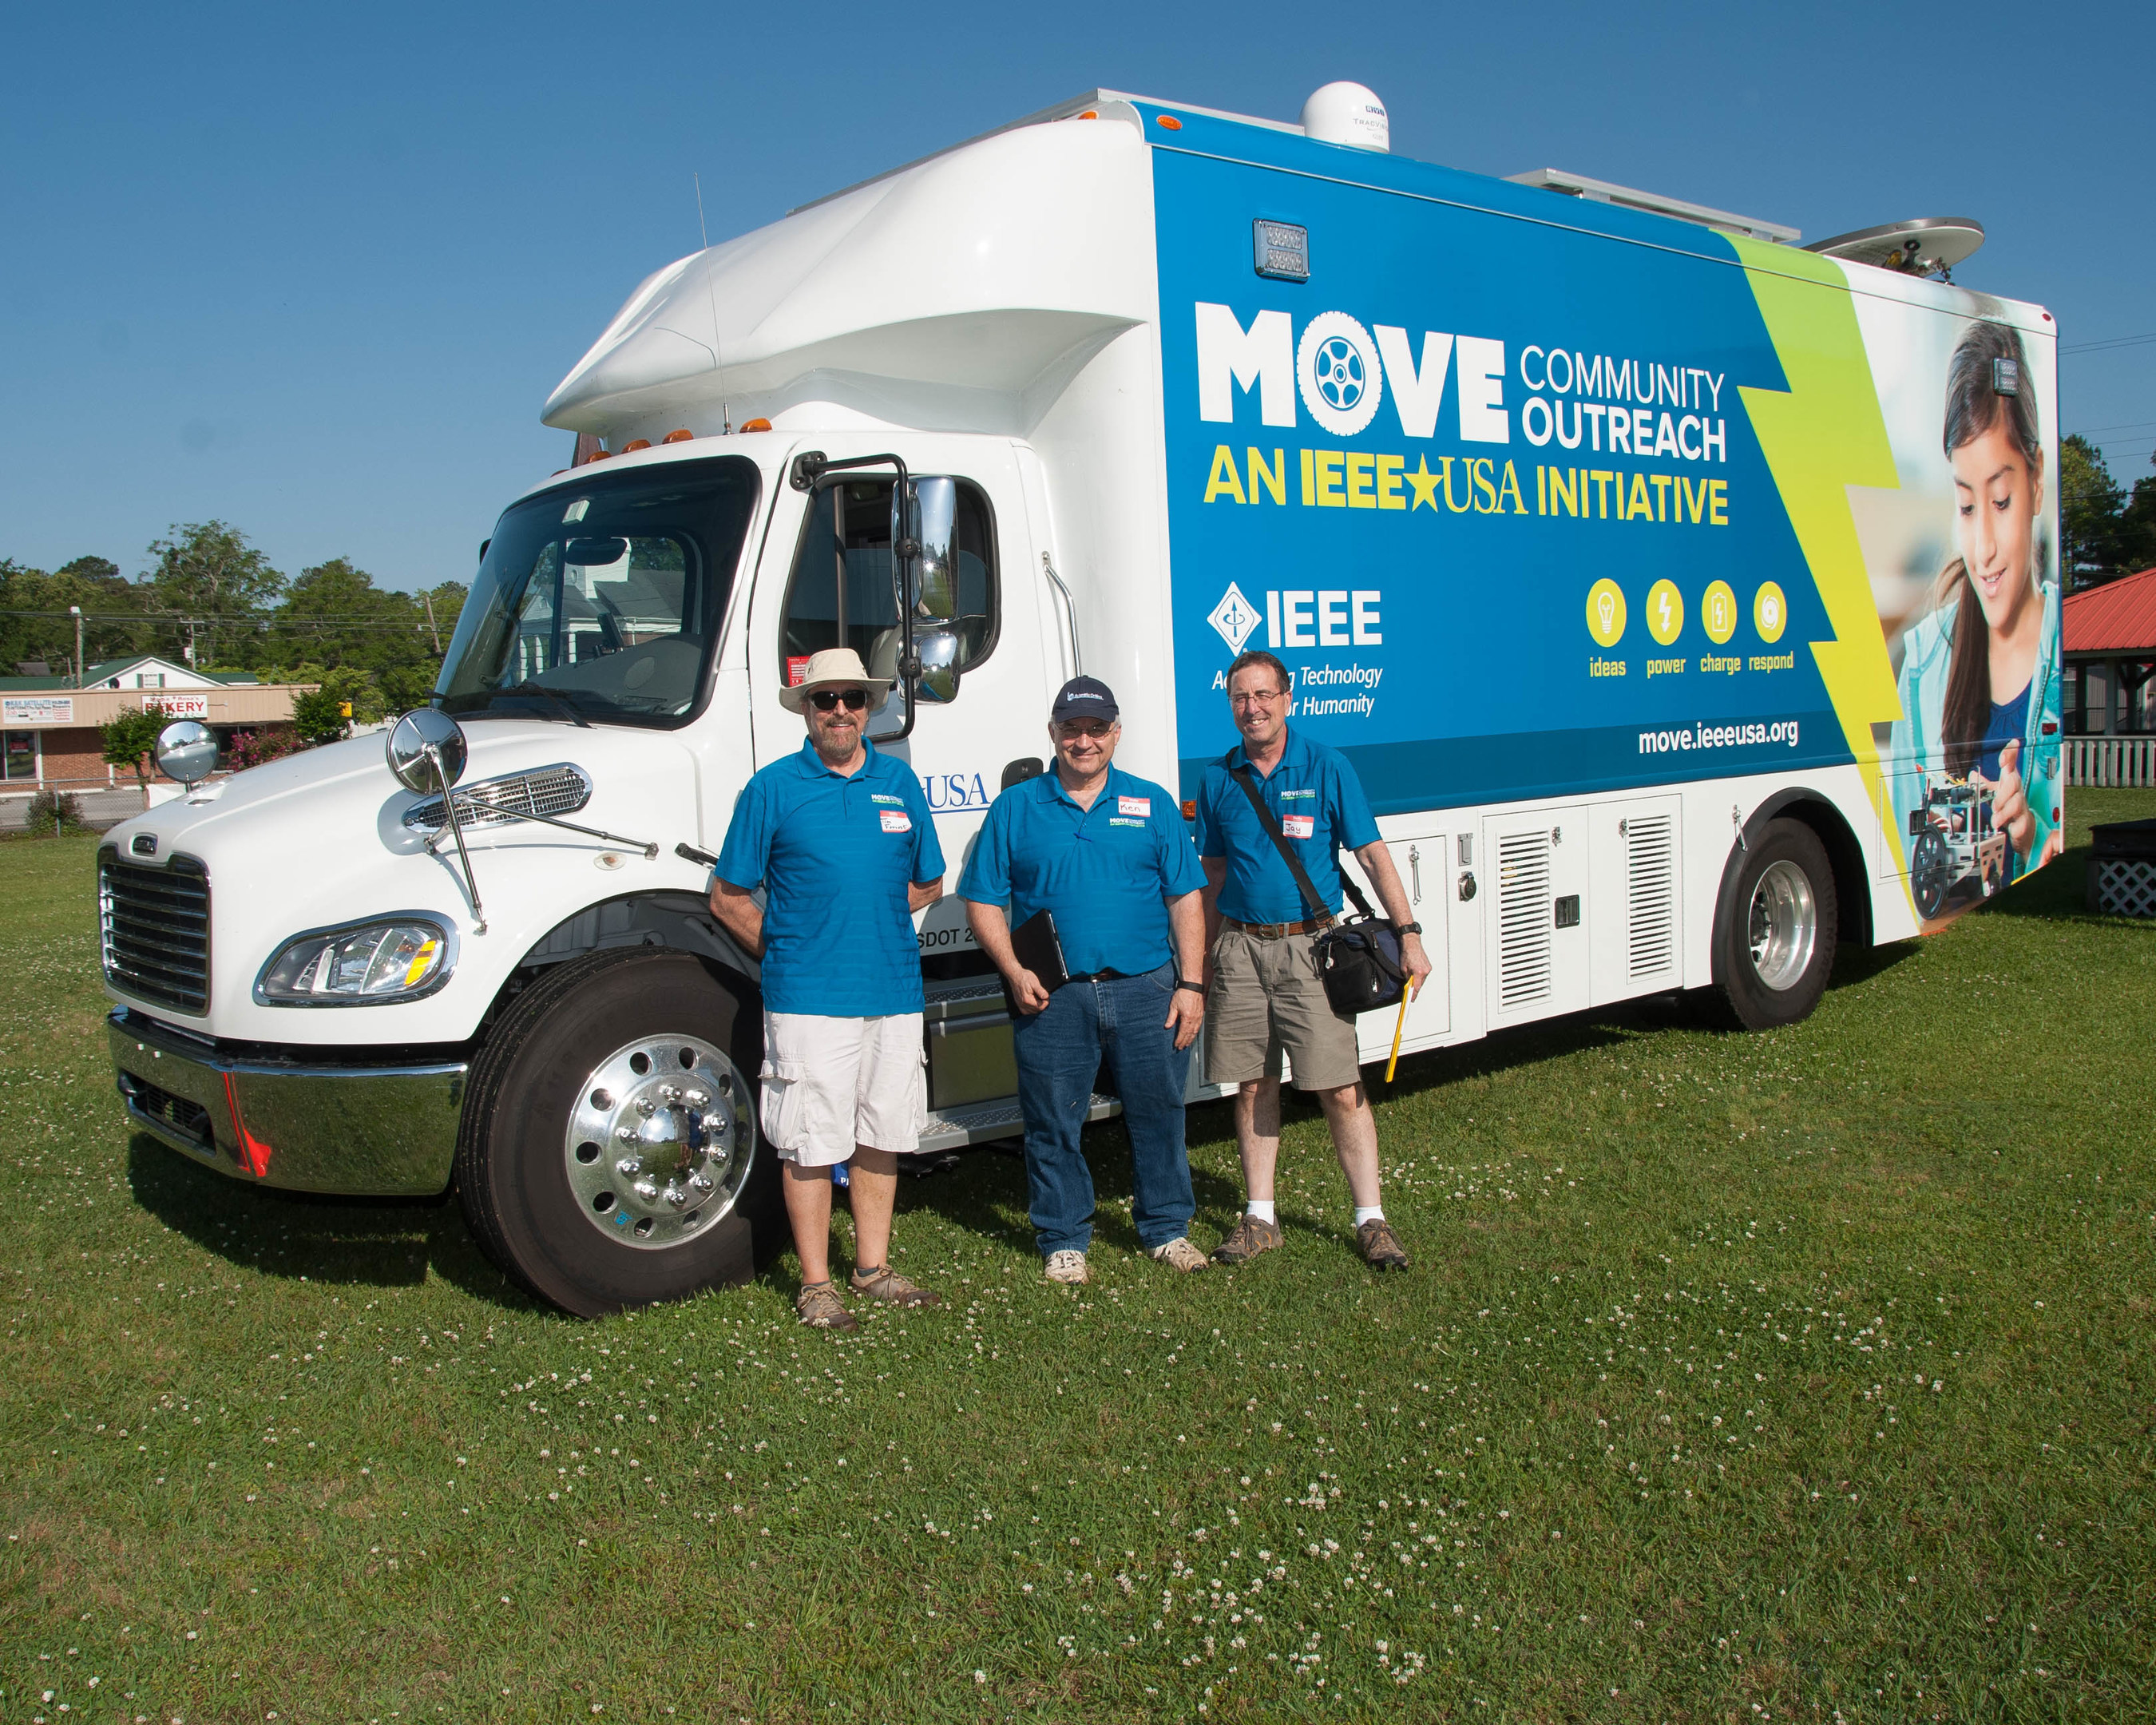 IEEE-USA's Mobile Outreach Vehicle is bringing temporary power and Internet access to West Virginia flood victims.